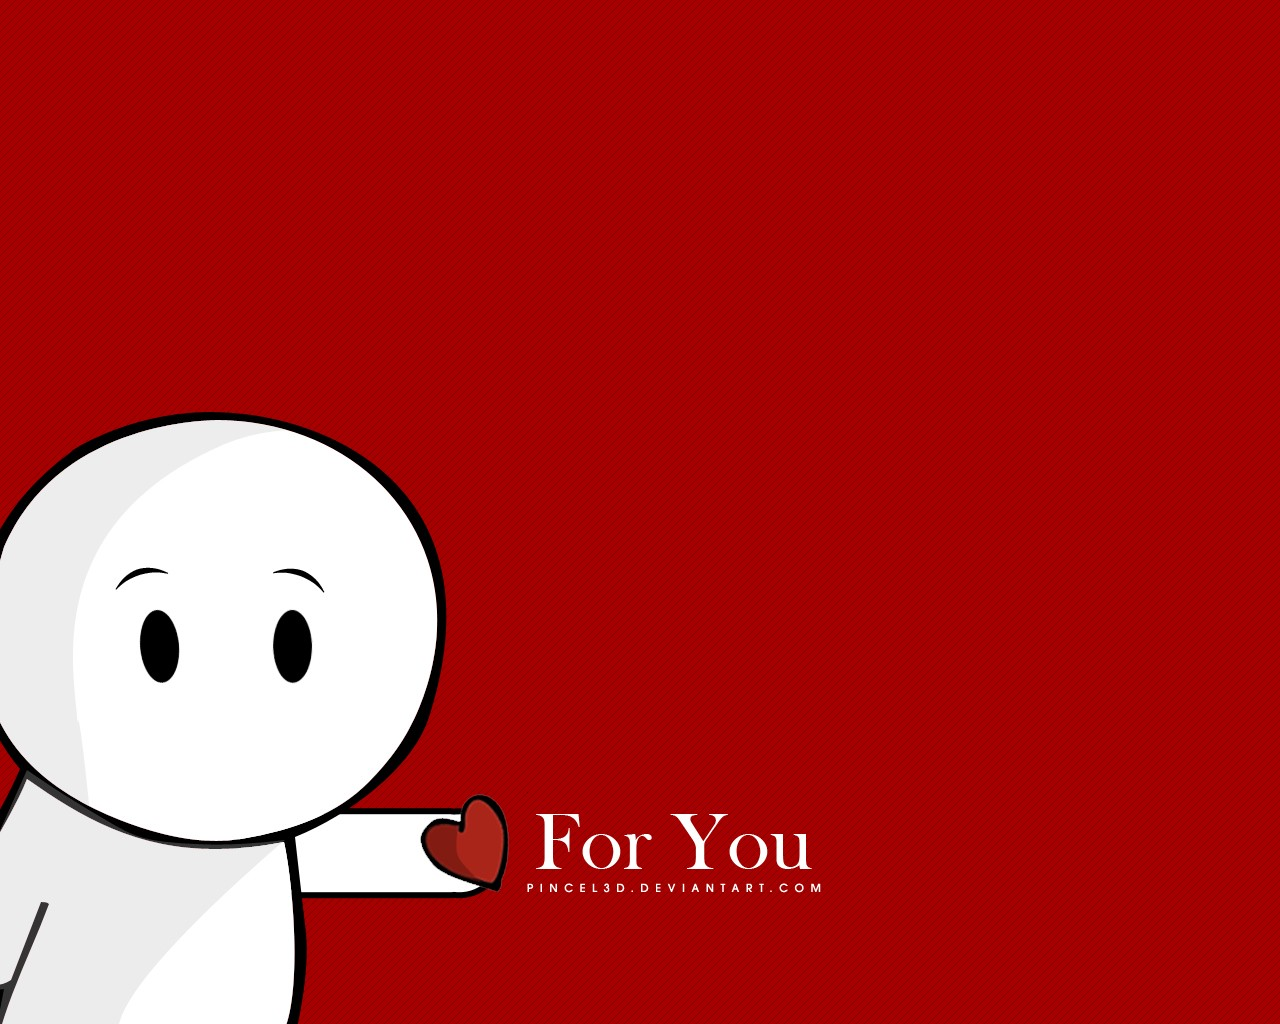 I Love You Wallpapers HD A17 - HD Desktop Wallpapers 4k HD